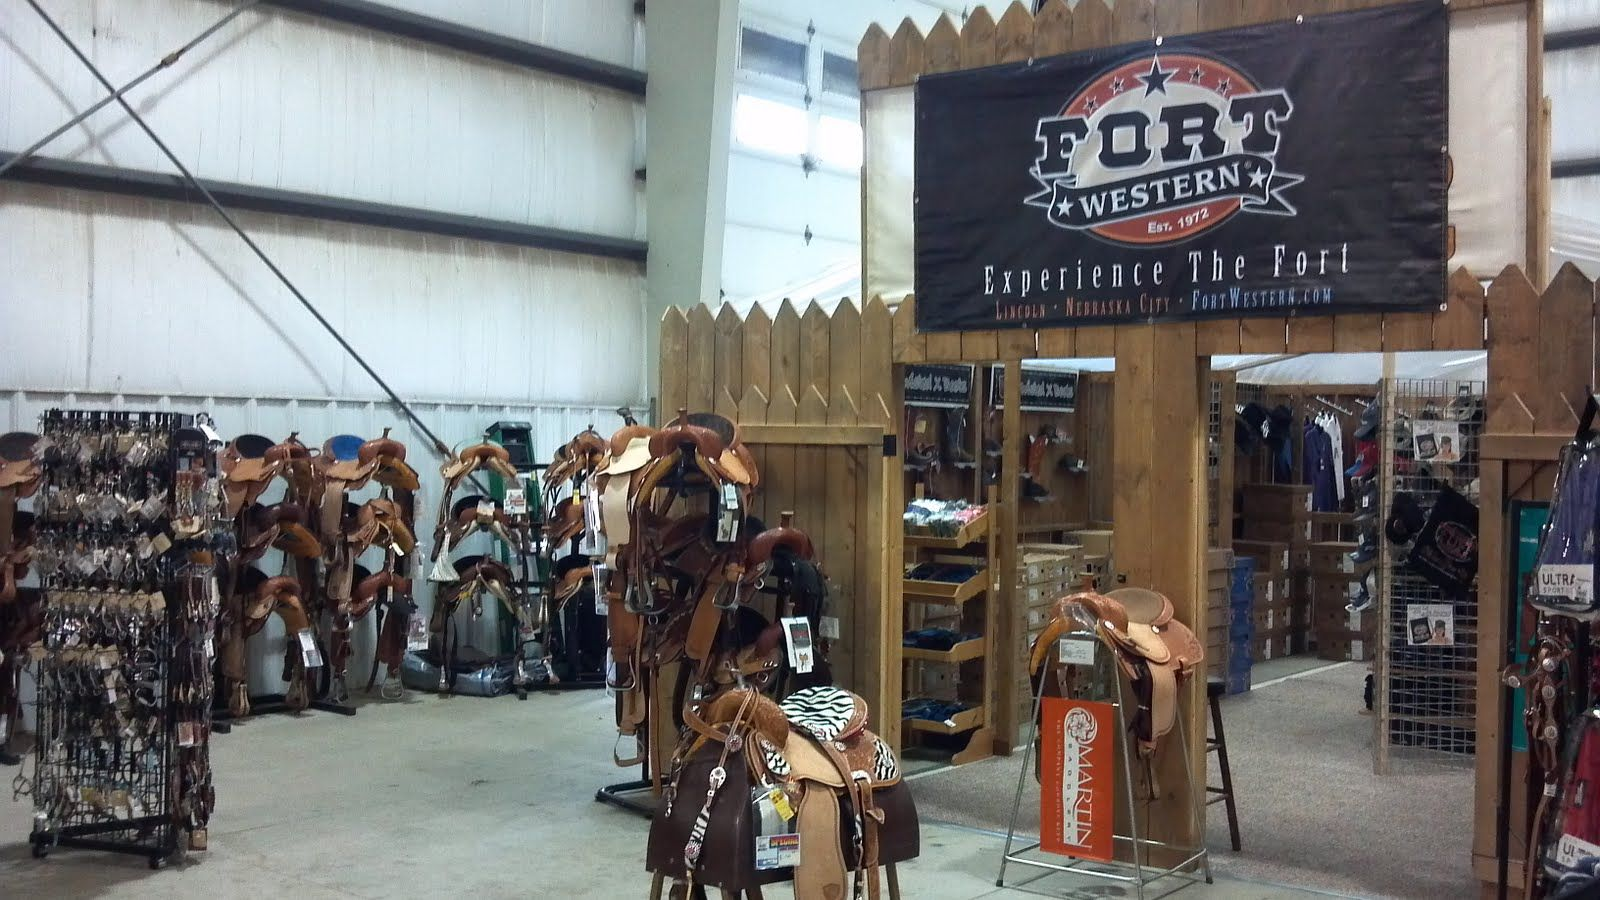 Come See The Fort Stockade Western Wear Booth at the WRPA